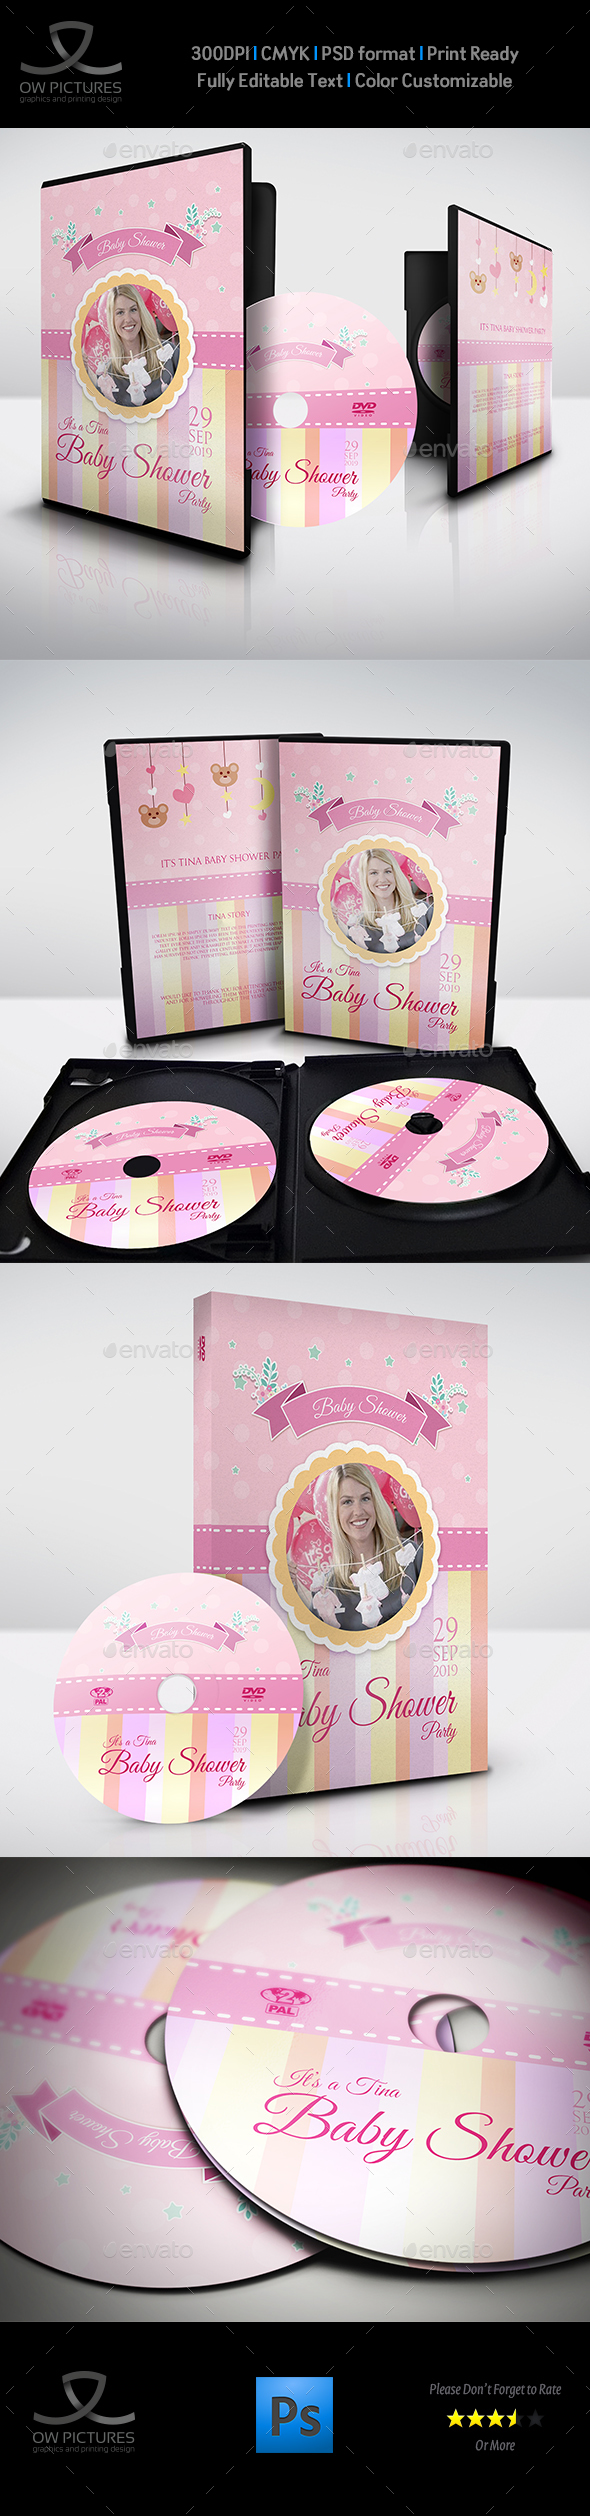 Baby Shower Party DVD Template Vol.8 - CD & DVD Artwork Print Templates